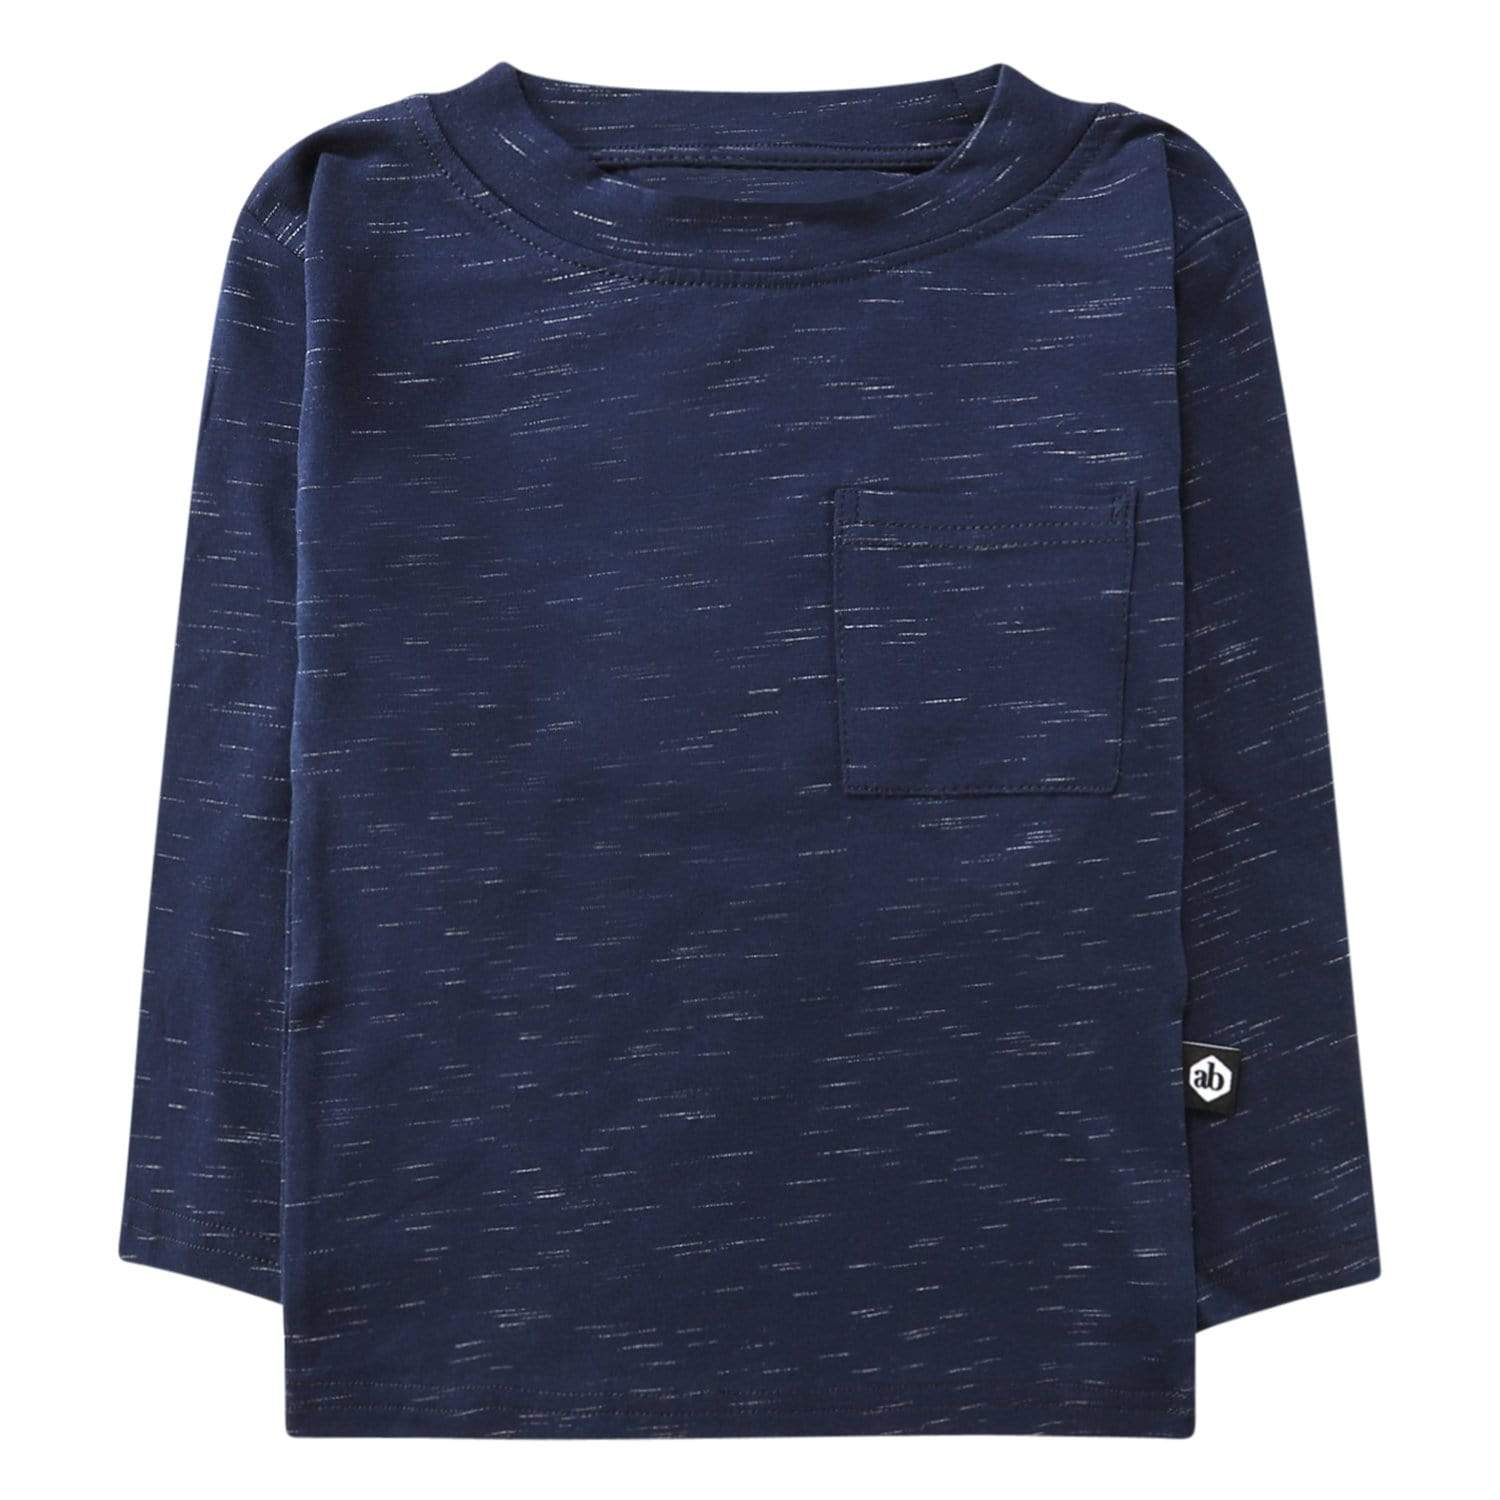 Long Sleeve Tee - Navy - Size 3 Only